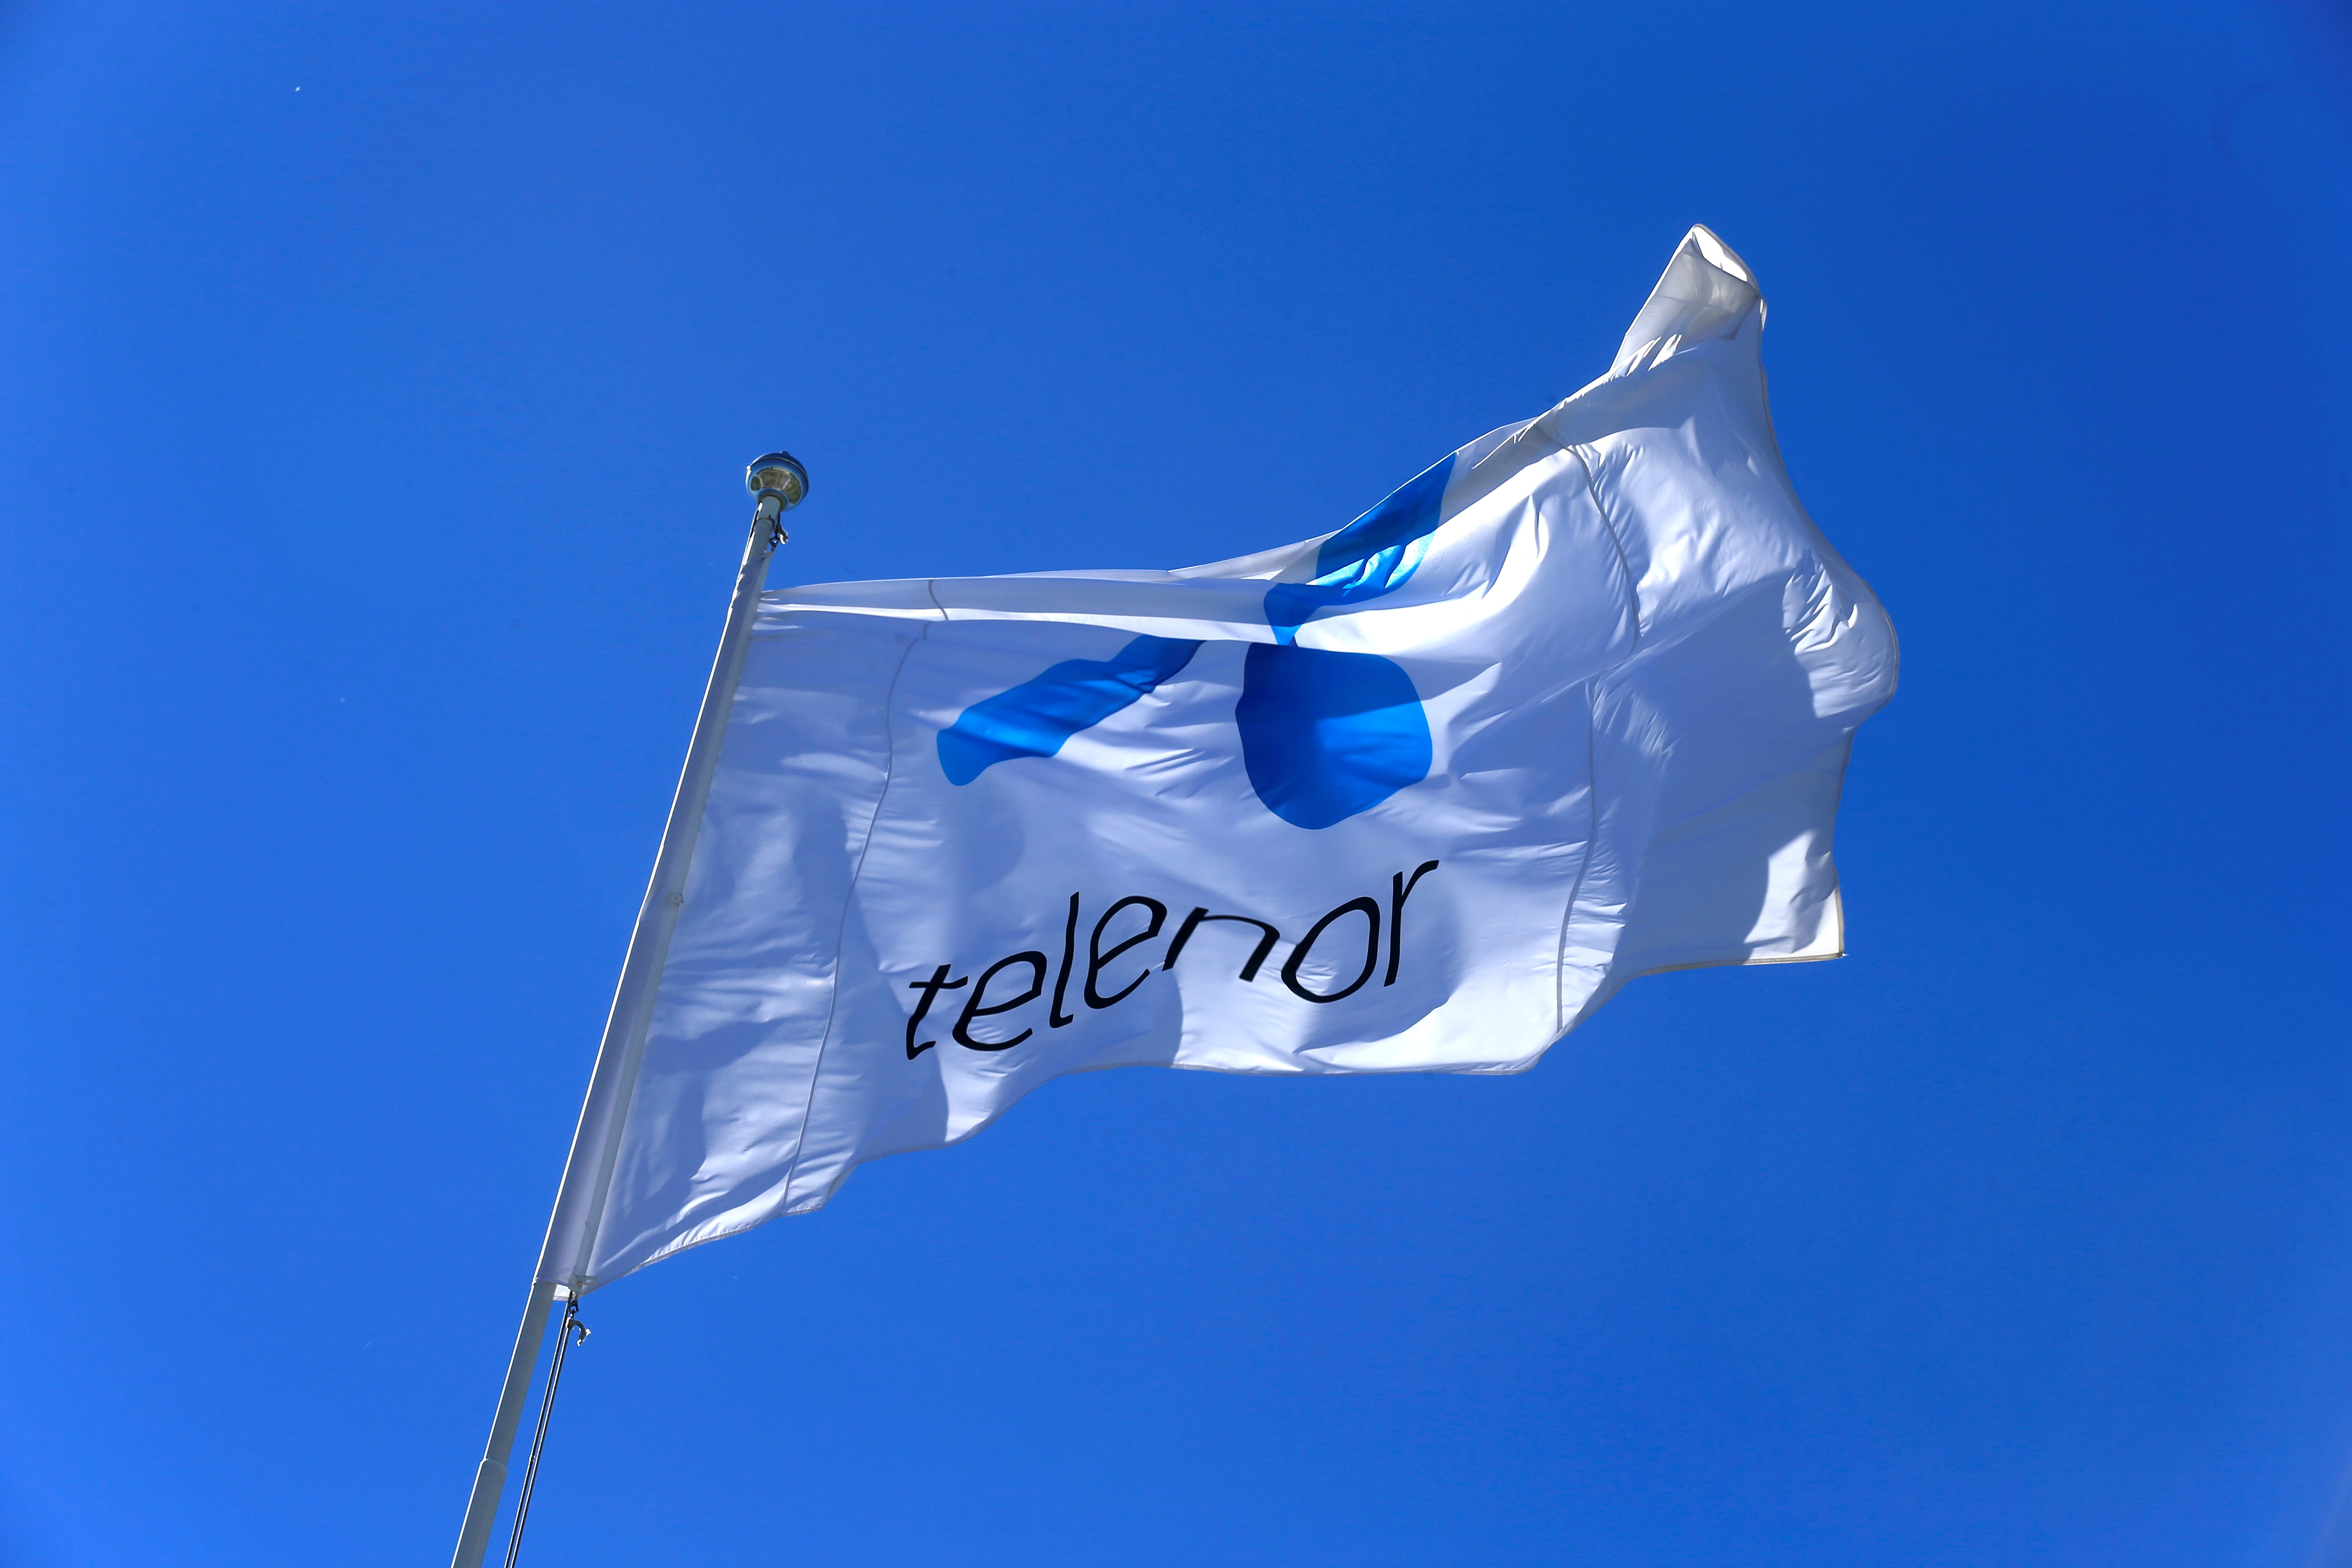 Telenor flag flutters next to the company's headquarters in Fornebu, Norway, June 1, 2017. REUTERS/Ints Kalnins/File Photo